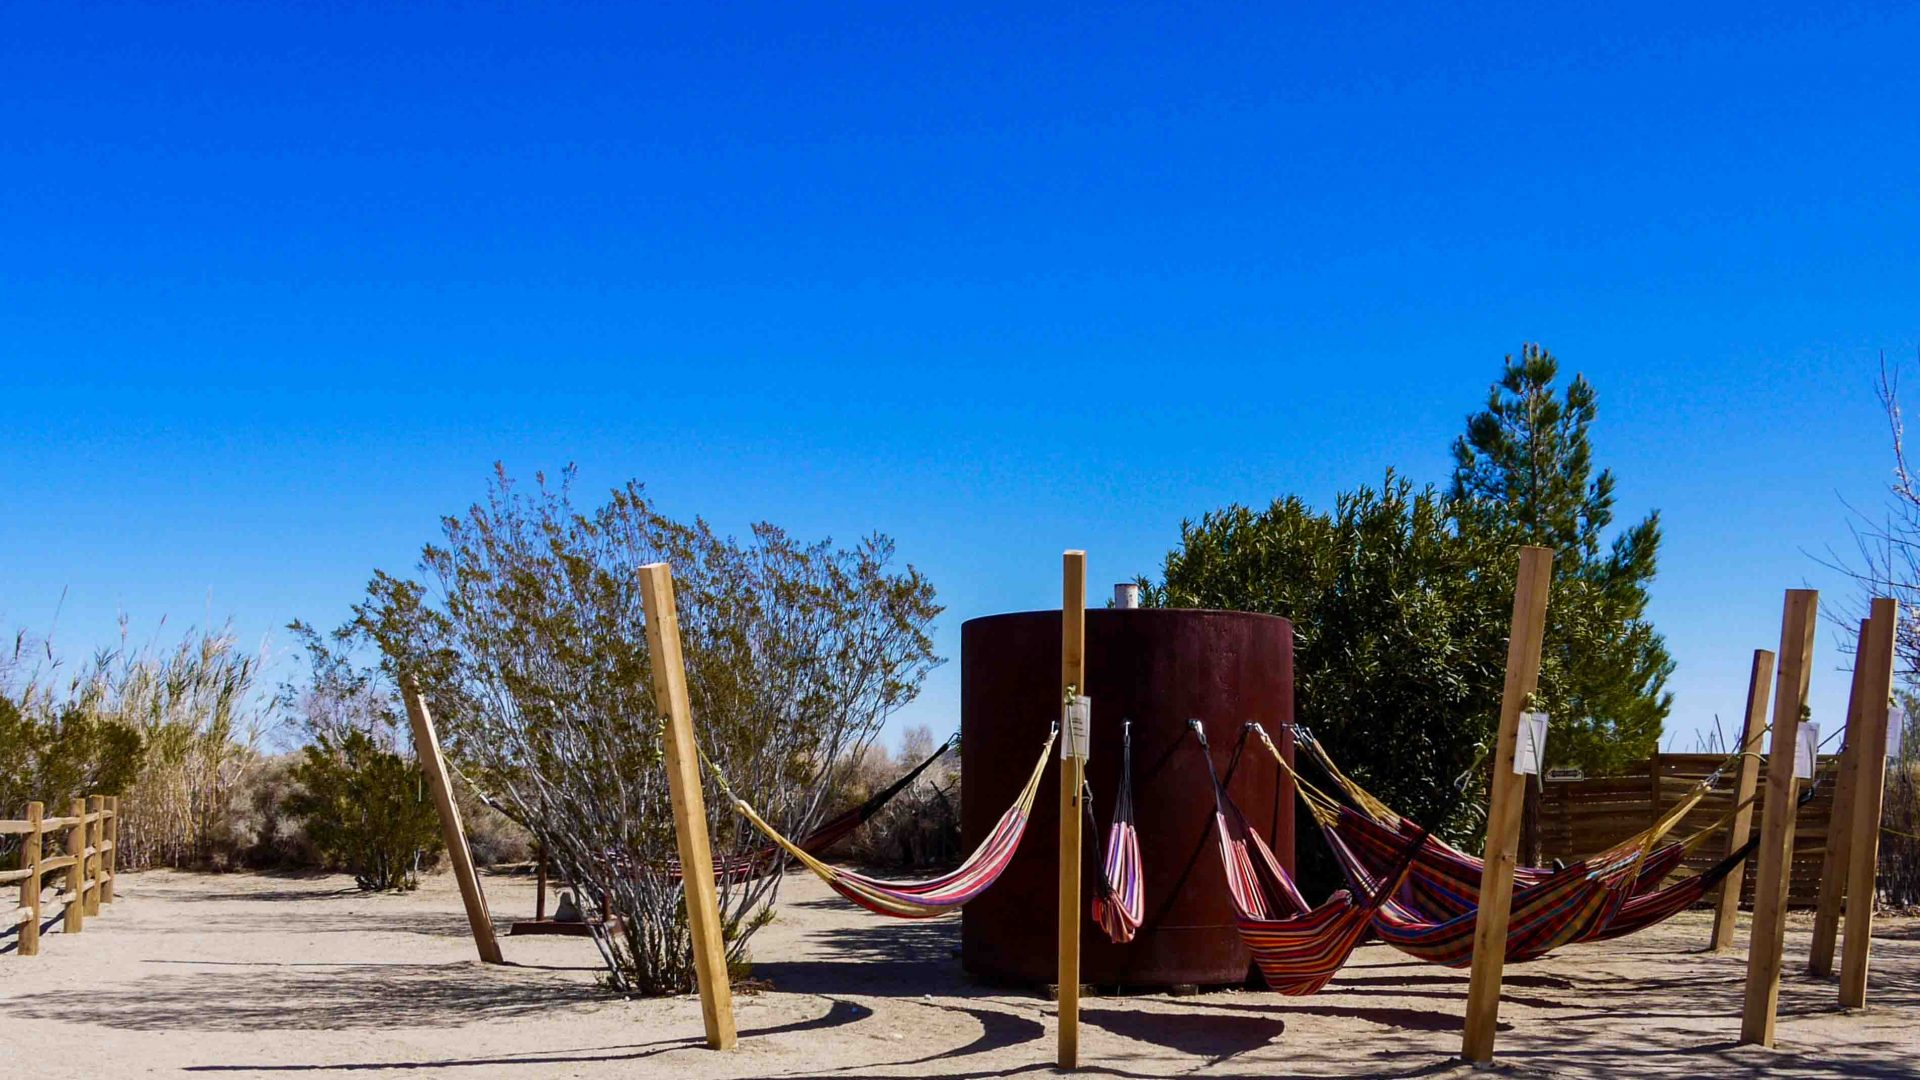 Hammocks where visitors can relax and take in the mystical atmosphere surrounding the Integratron in the Mojave Desert.